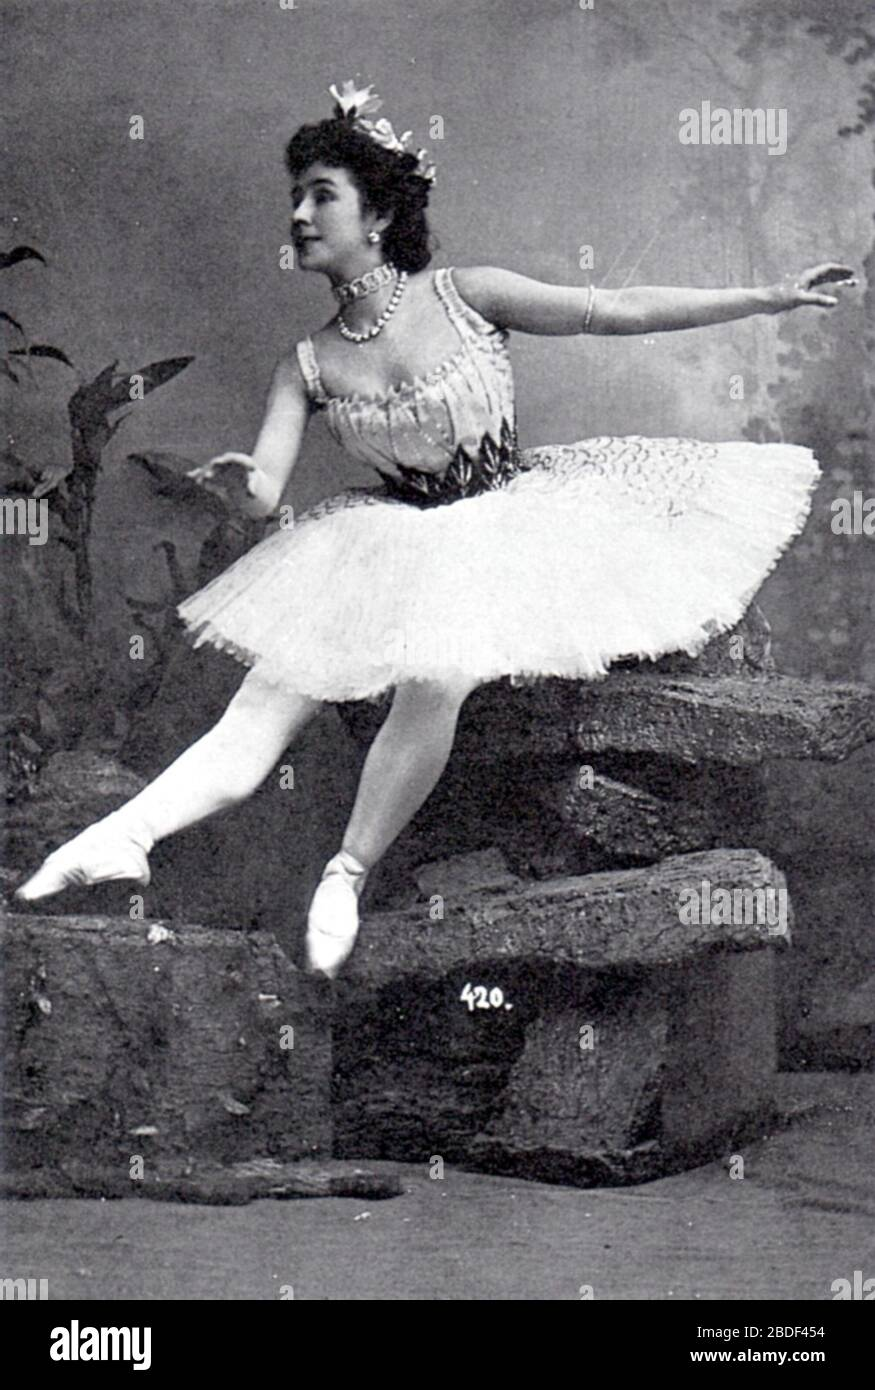 """""""English: Photographic postcard of Mathilde Felixovna Kschessinskaya (1872-1971), Soloist to His Imperial Majesty and Prima ballerina of the St. Petersburg Imperial Theatres. She is costumed as Princess Aspicia in the under-water scene from the 1862 ballet The Pharaoh's Daughter, created by the choreographer Marius Petipa (1811-1910) and the composer Cesare Pugni (1803-1870).; between 1898 and 1900 date QS:P,+1500-00-00T00:00:00Z/6,P1319,+1898-00-00T00:00:00Z/9,P1326,+1900-00-00T00:00:00Z/9; Photo scanned from the 2nd edition of the book Ballet: An Illustrated History by Mary Clarke and Clemen Stock Photo"""